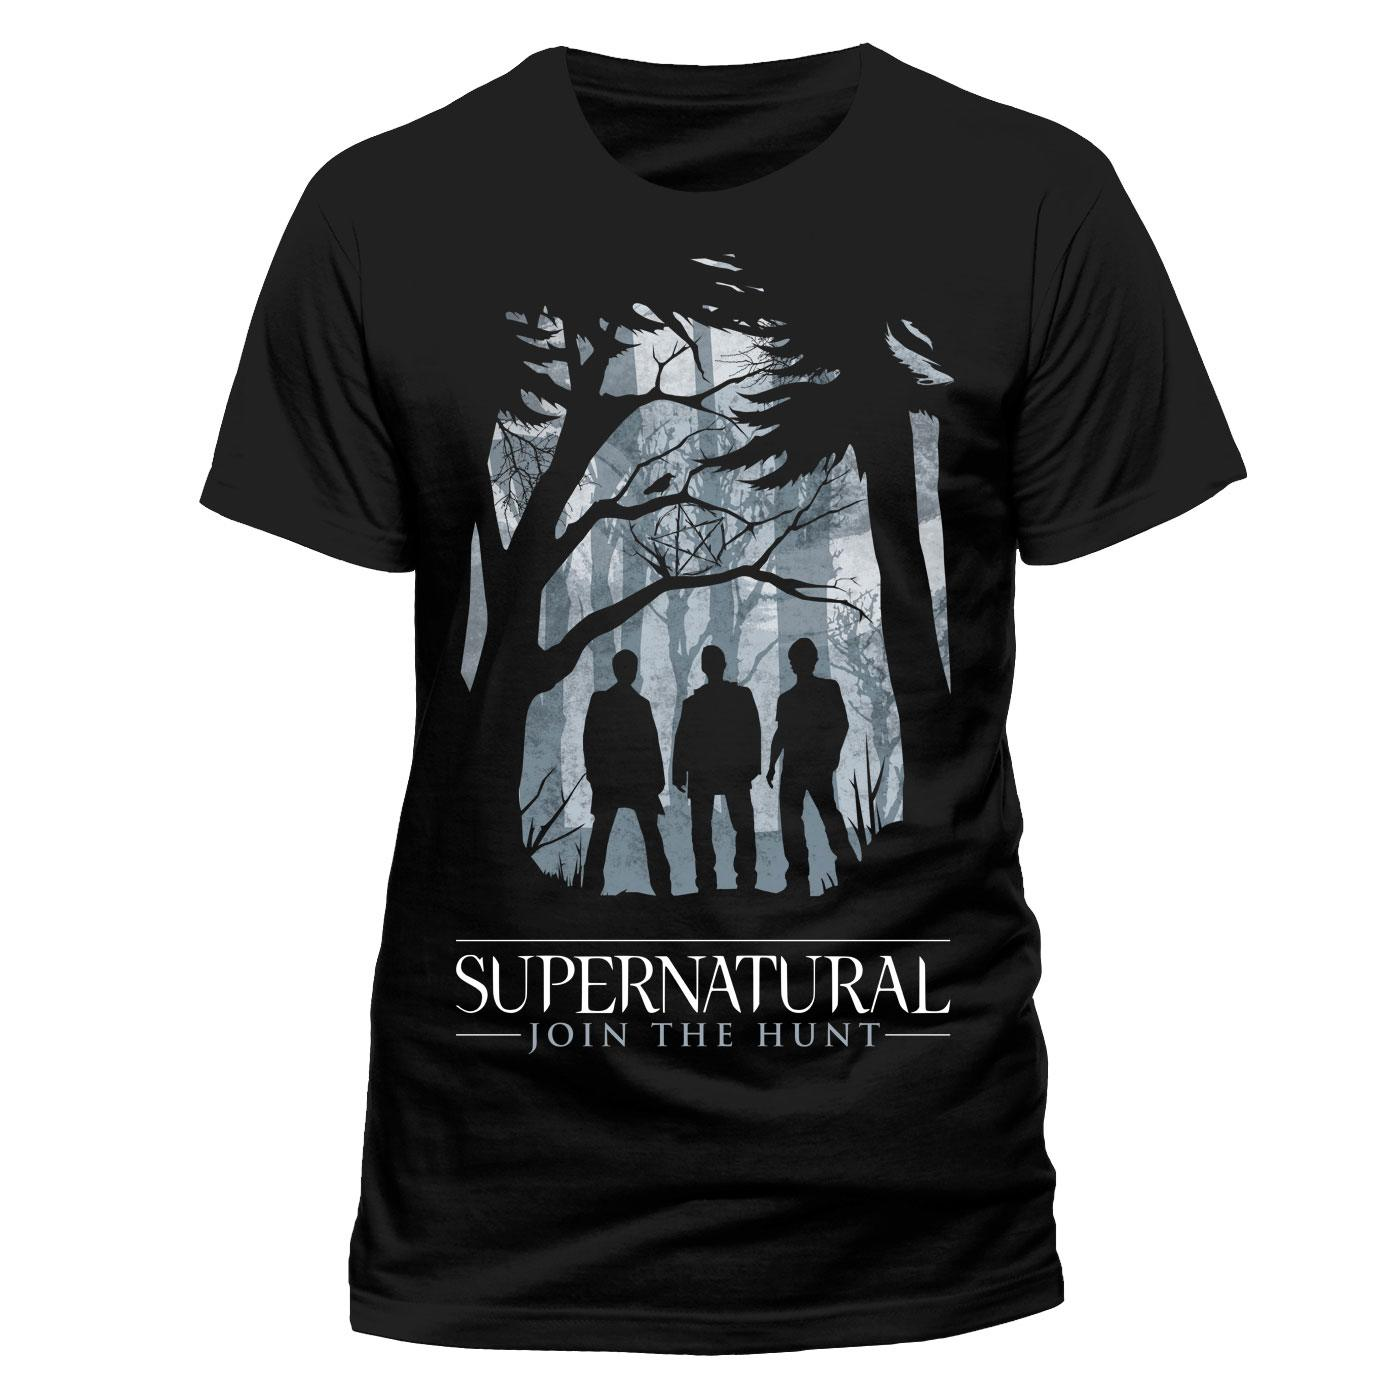 Supernatural T-Shirt Group Outline Size S